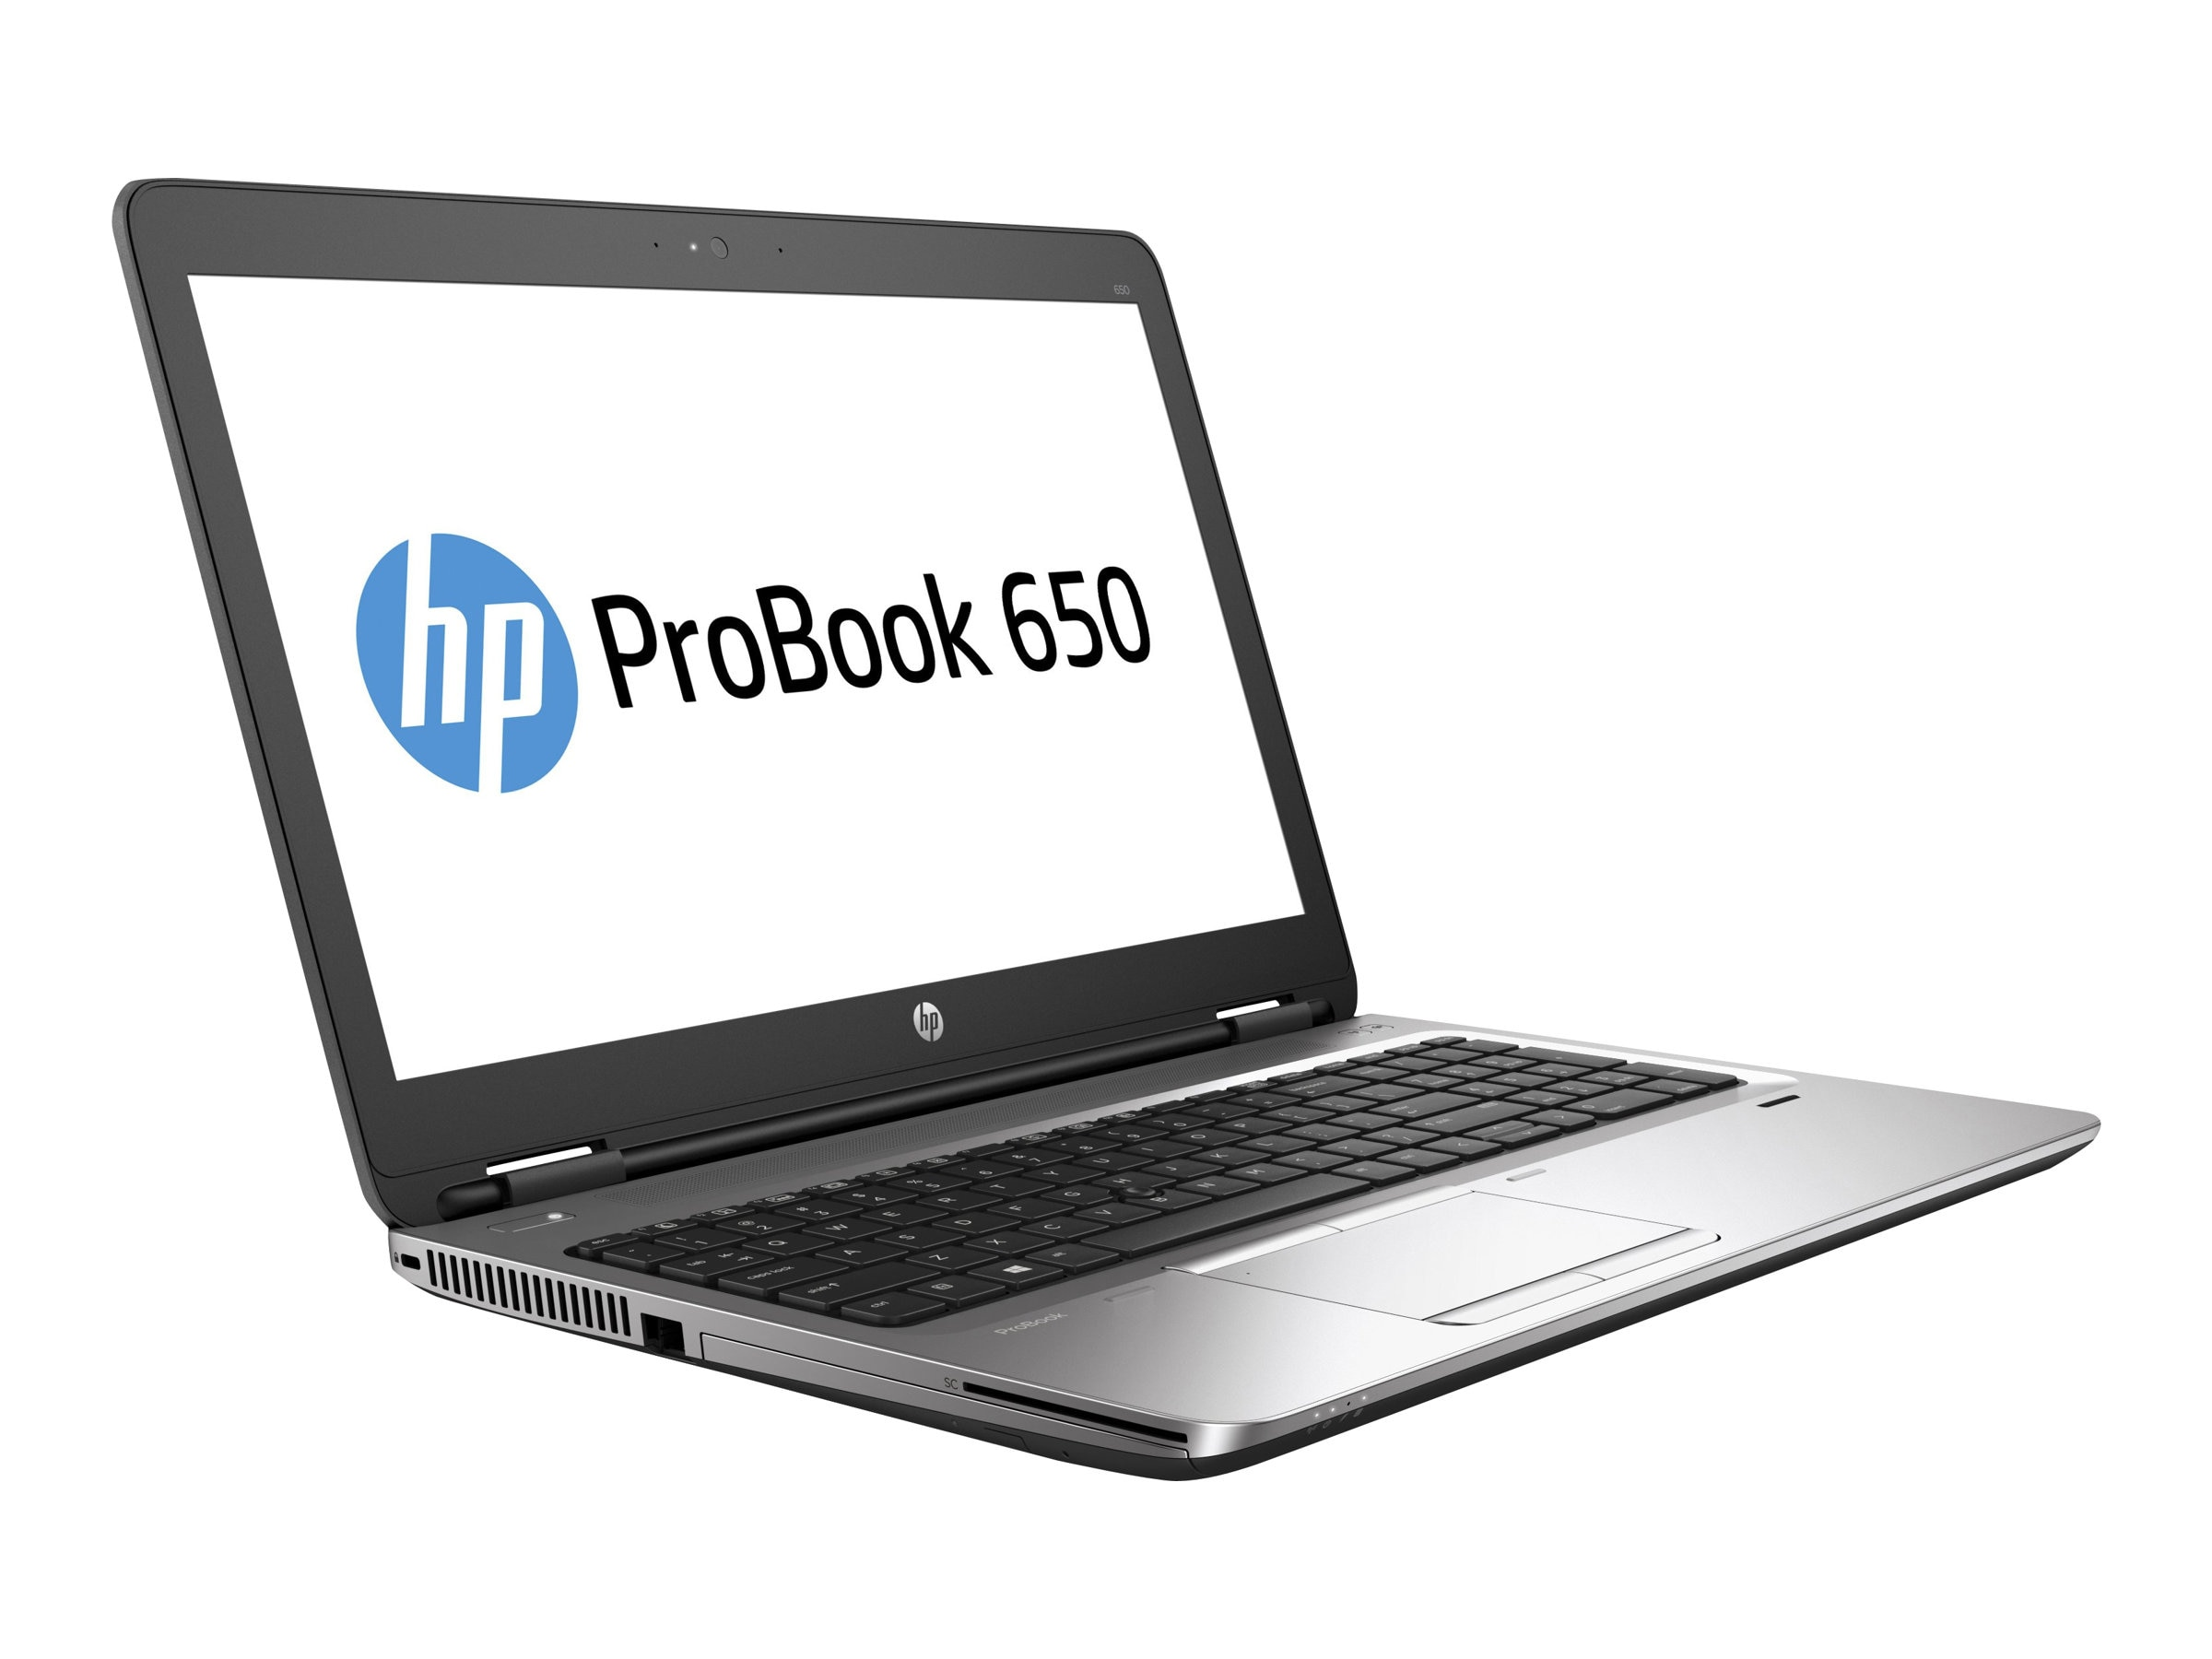 HP ProBook 650 G2 2.4GHz Core i5 15.6in display, T9E24AW#ABA